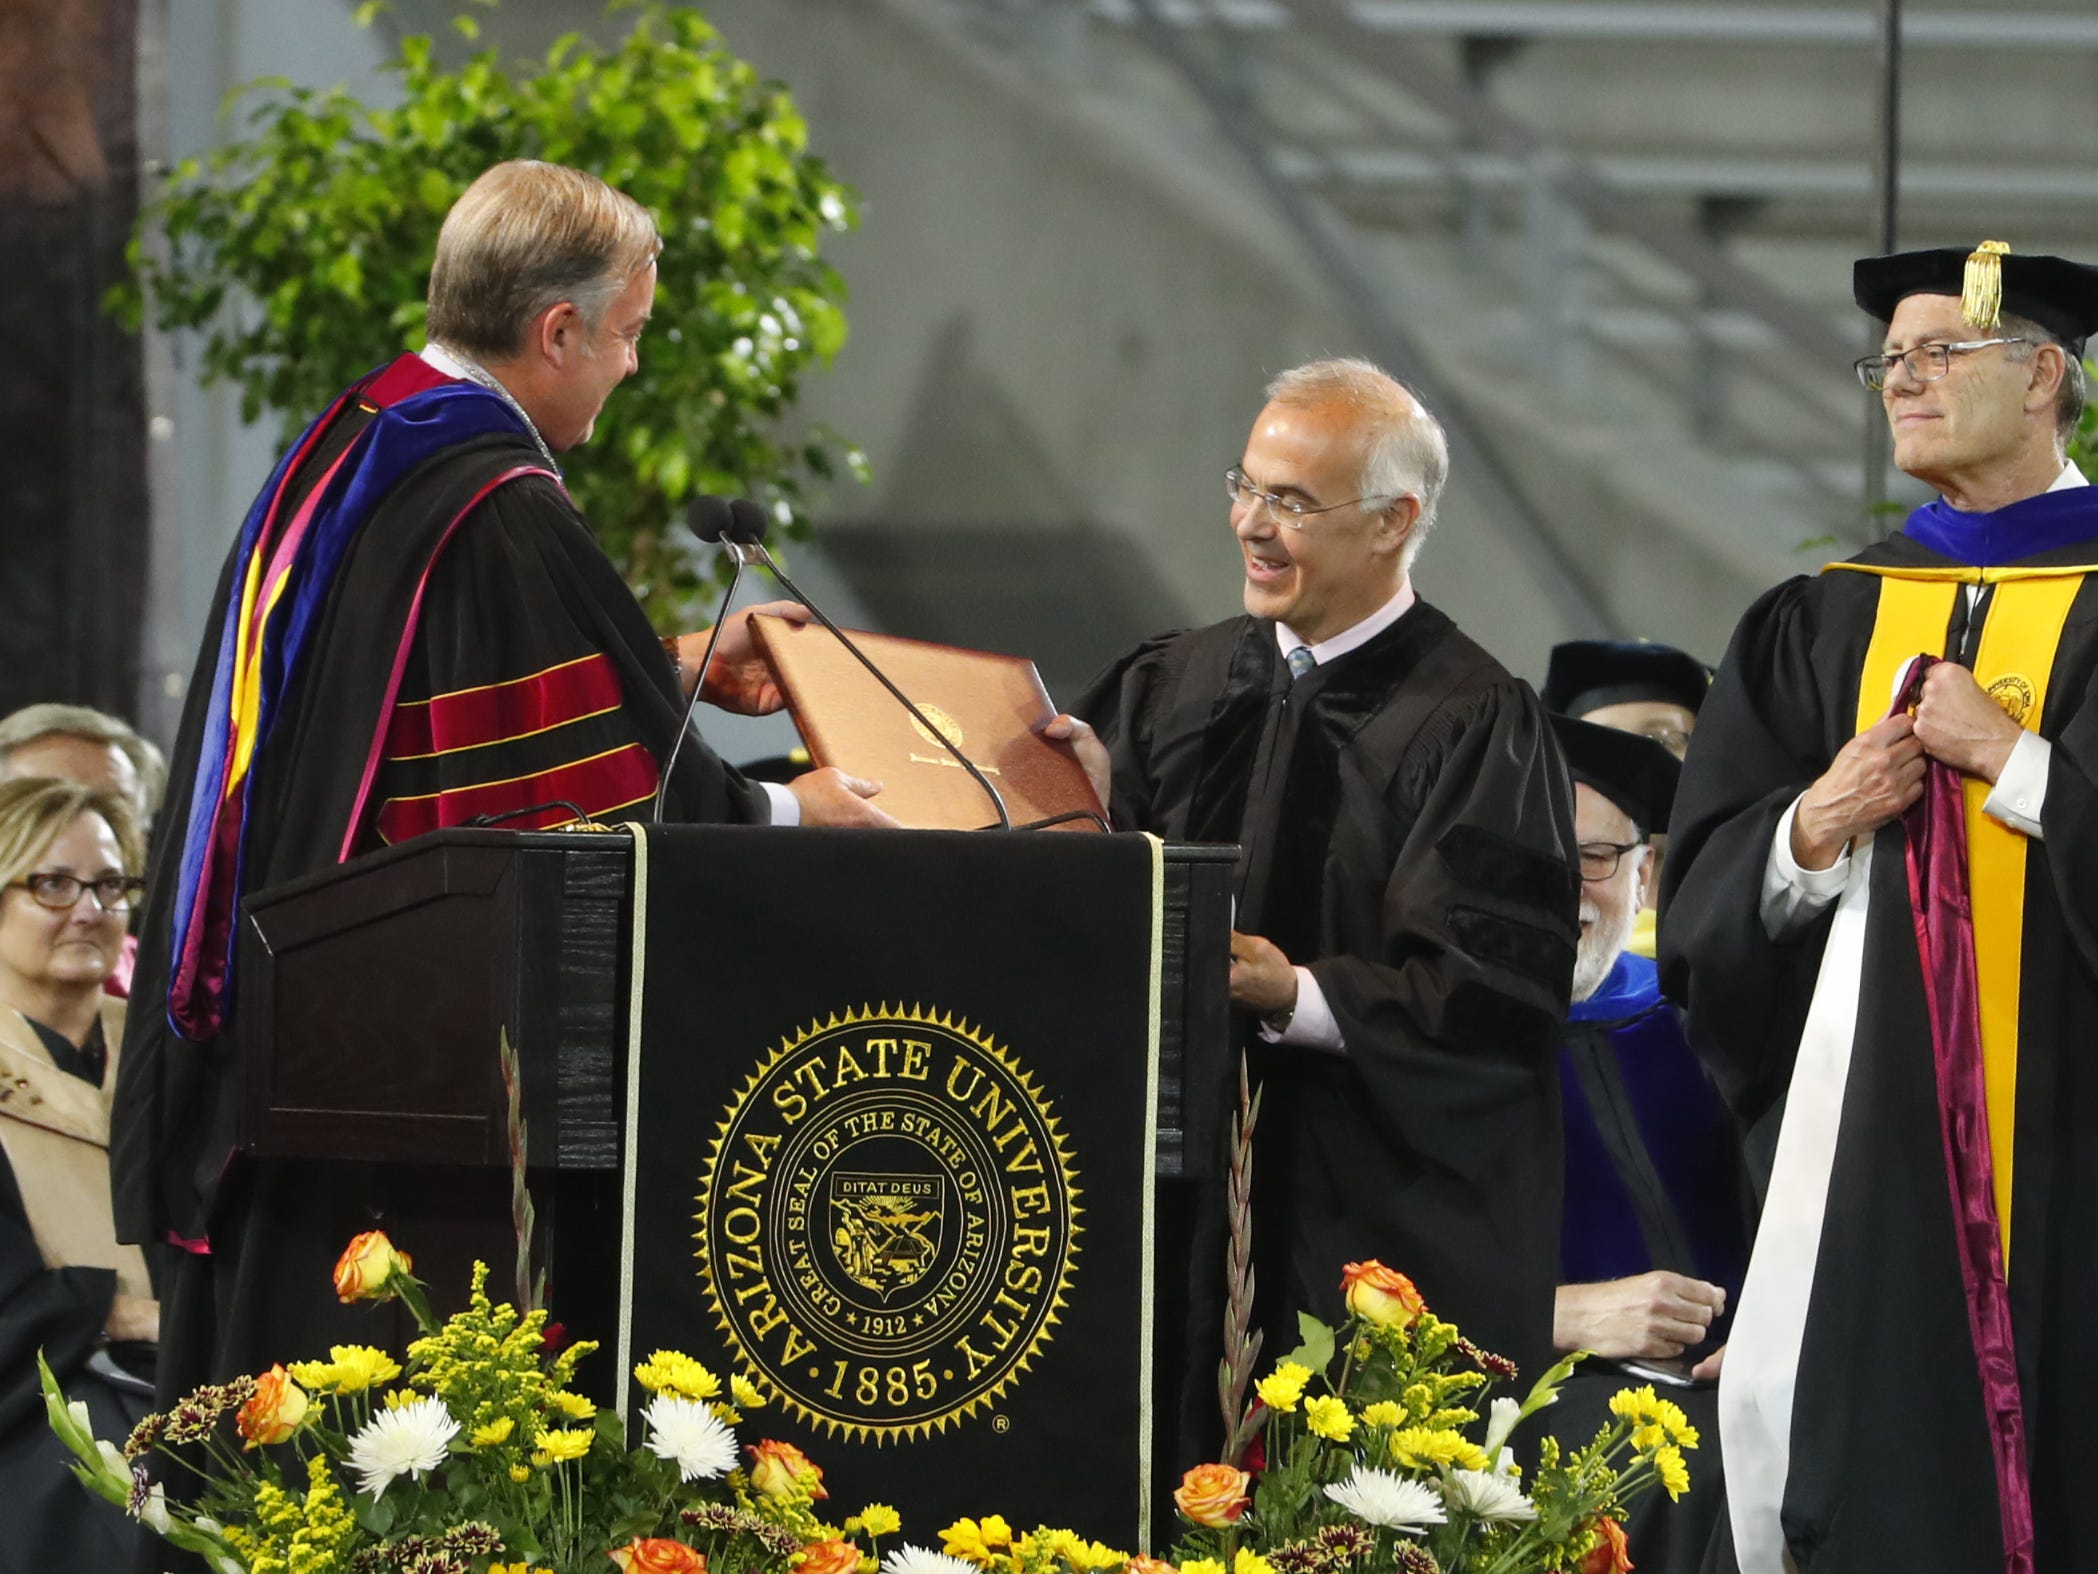 ASU President Michael Crow presents David Brooks with an honorary degree during ASU's Undergraduate Commencement at Sun Devil Stadium in Tempe, Ariz. on May 6, 2019.